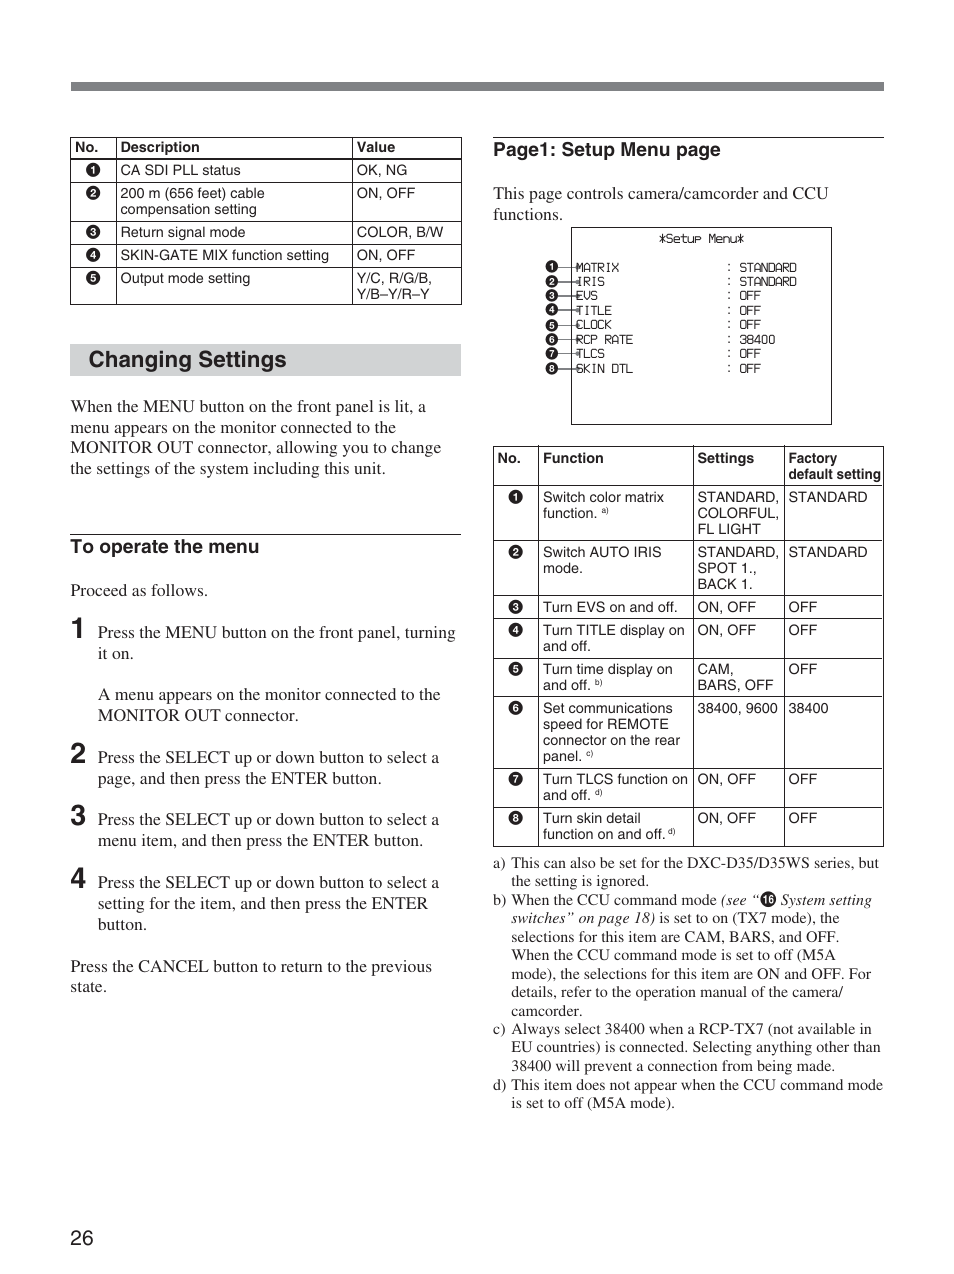 changing settings page1 setup menu page sony ccu d50 user manual rh manualsdir com sony ccu d50 manual pdf Sony Field Recorder